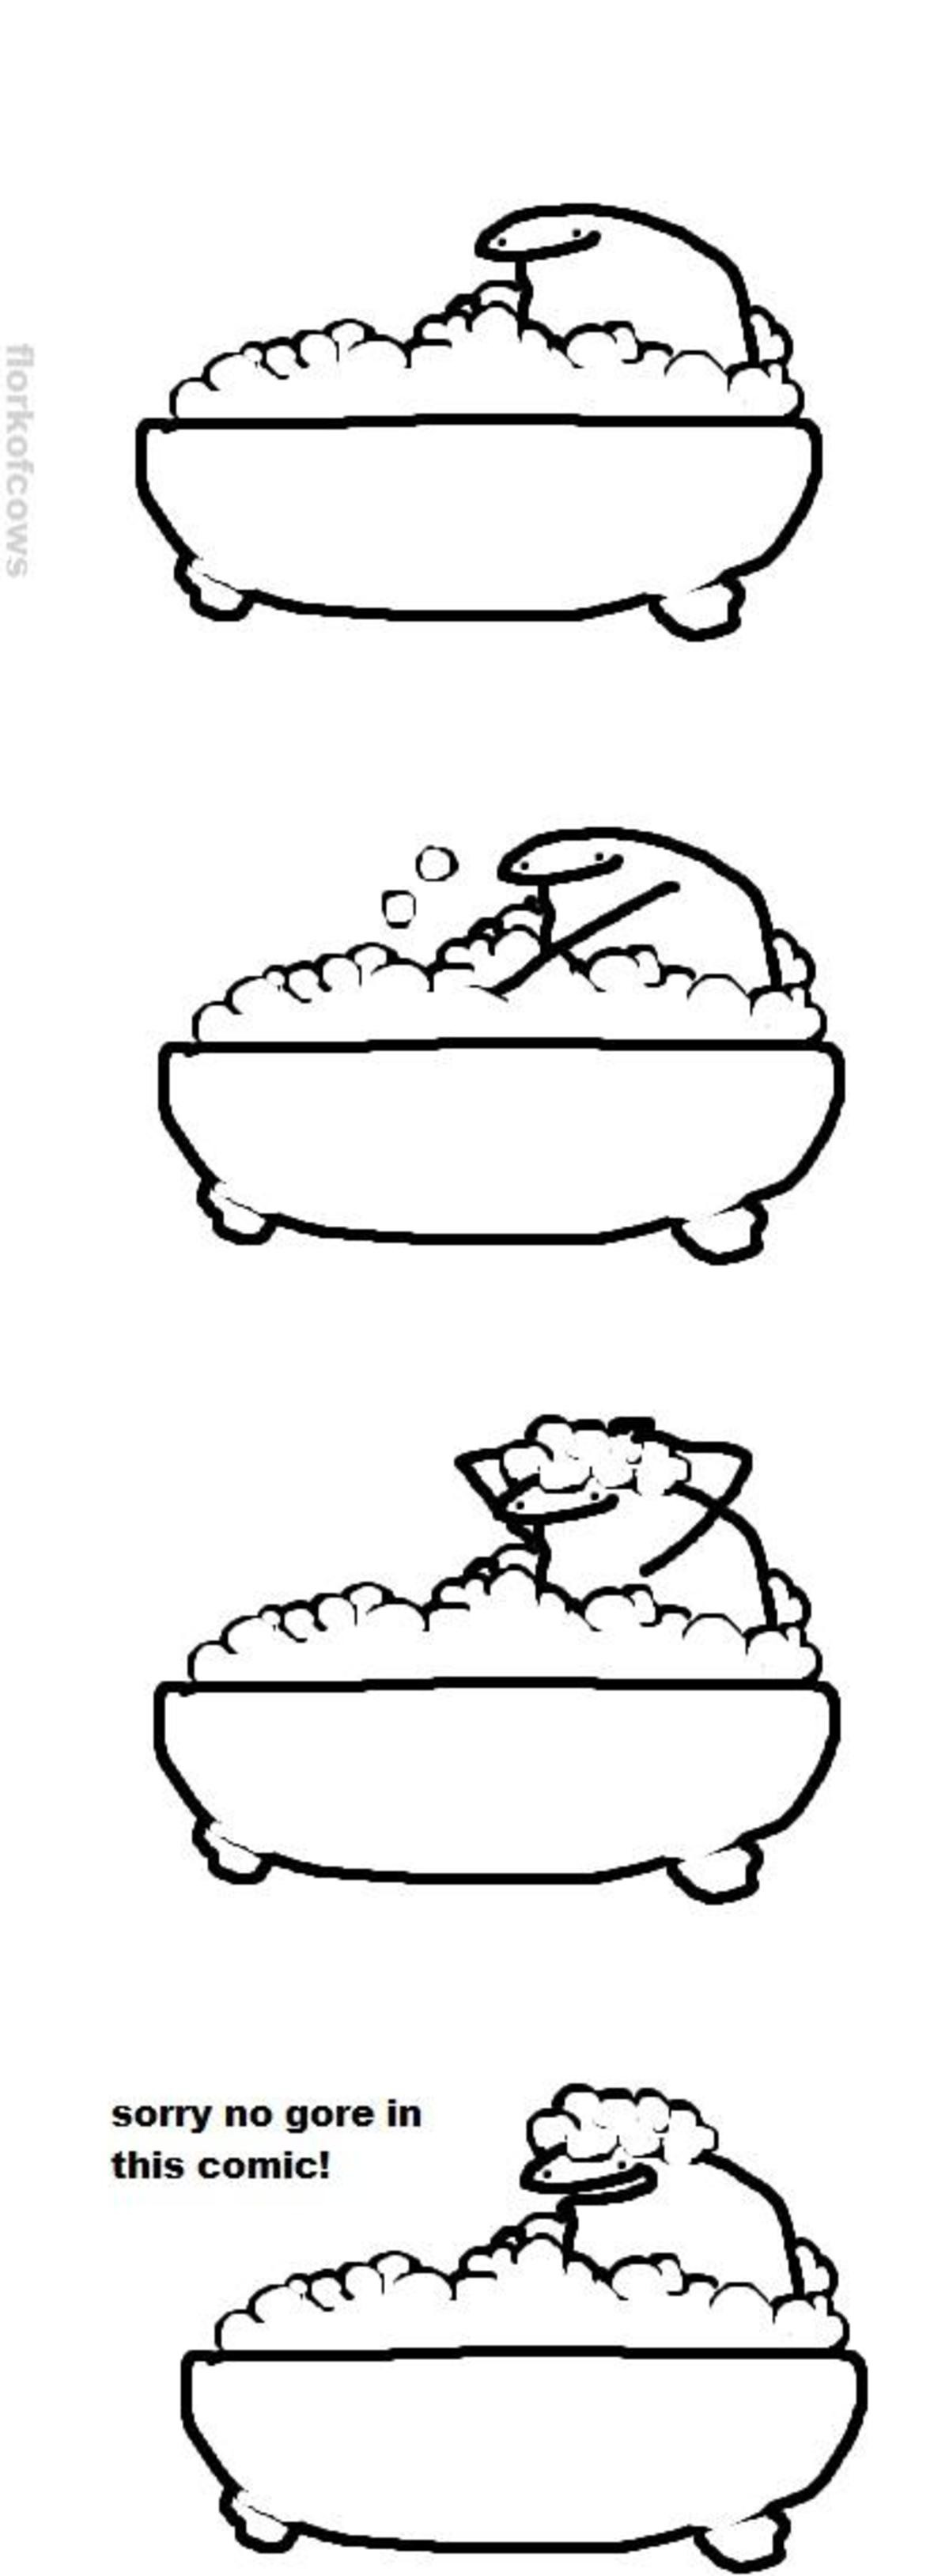 Tub. join list: FlorkOfCow (284 subs)Mention History.. What's in the tub, flork?